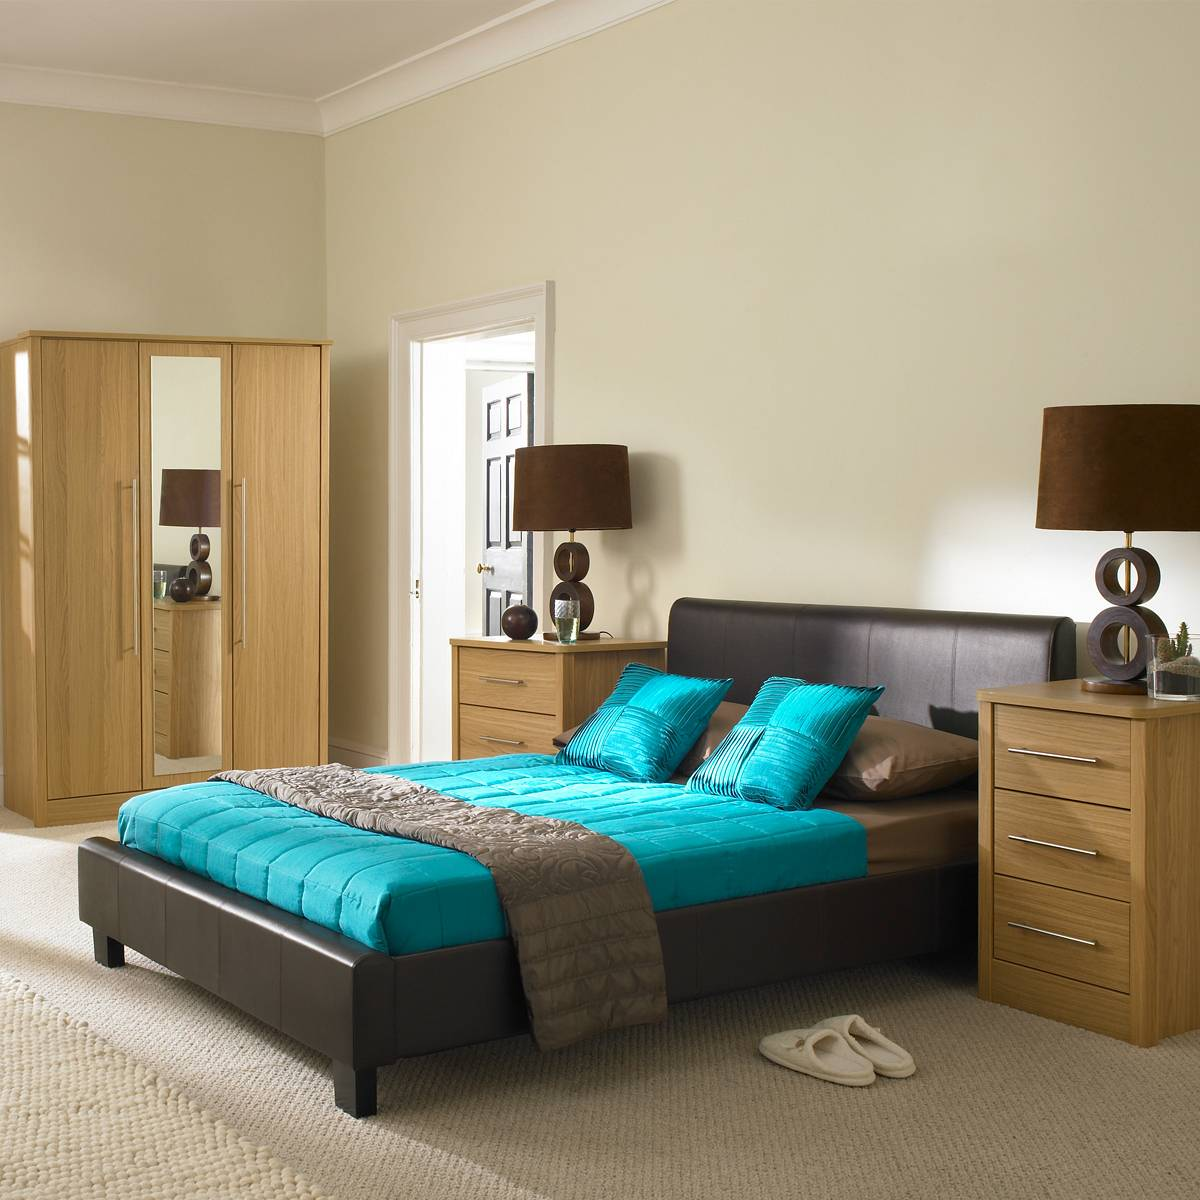 Ikea Bedroom Packages How To Make Bedroom More Relaxing Interior Designing